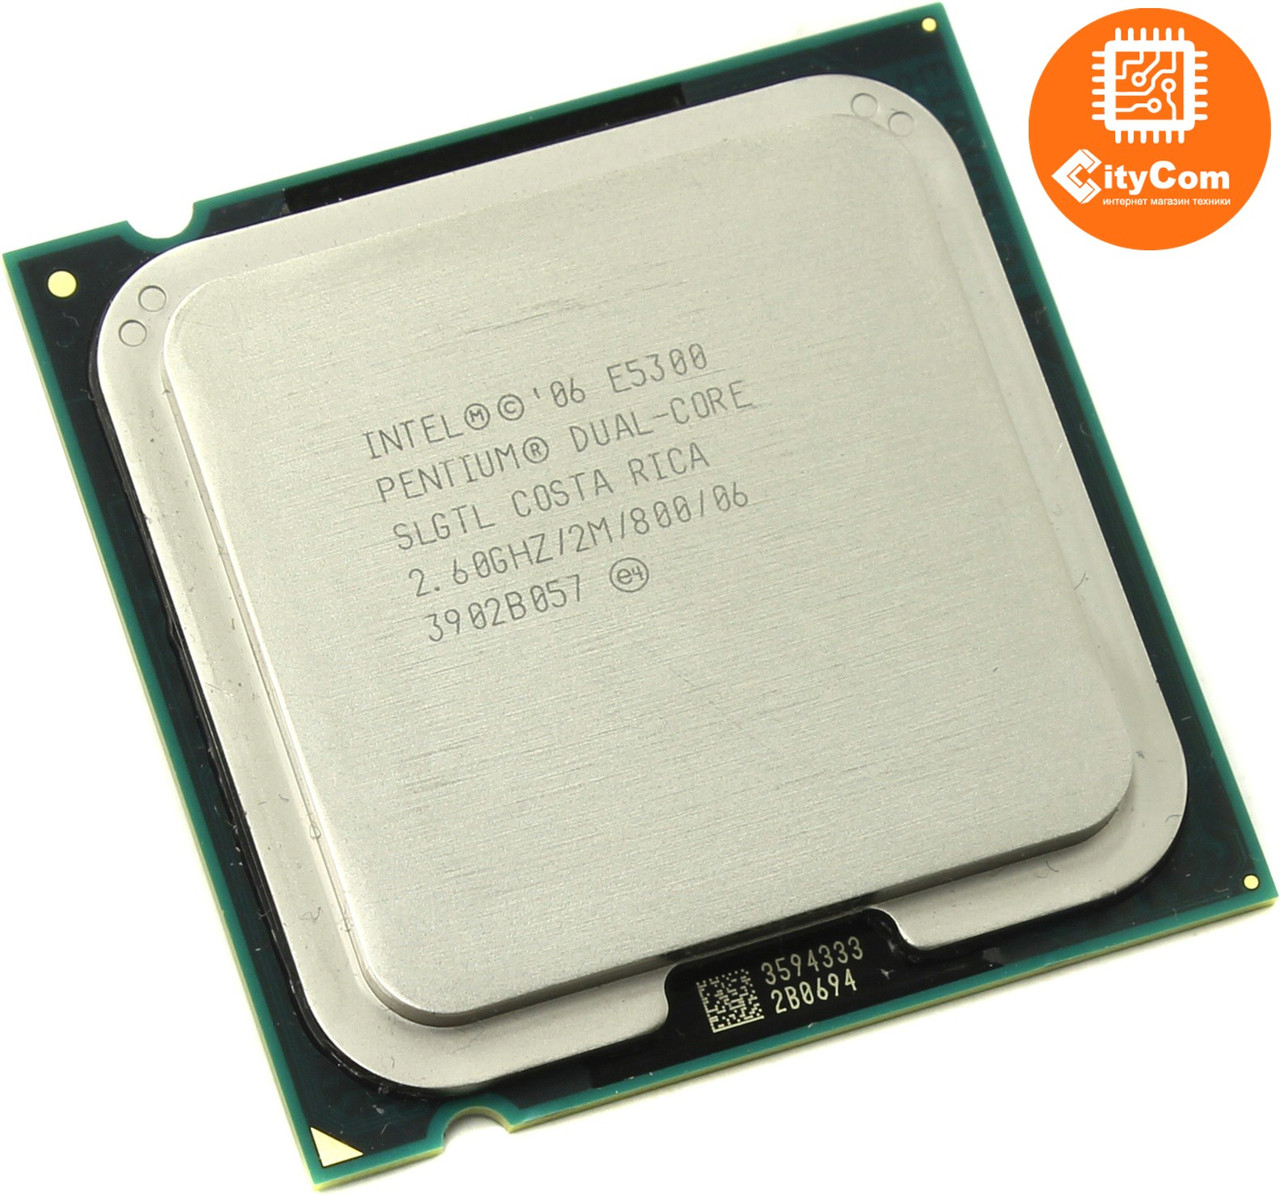 CPU Intel Dual Core E2140 1.6GHz, 1Mb, 800MHz, oem